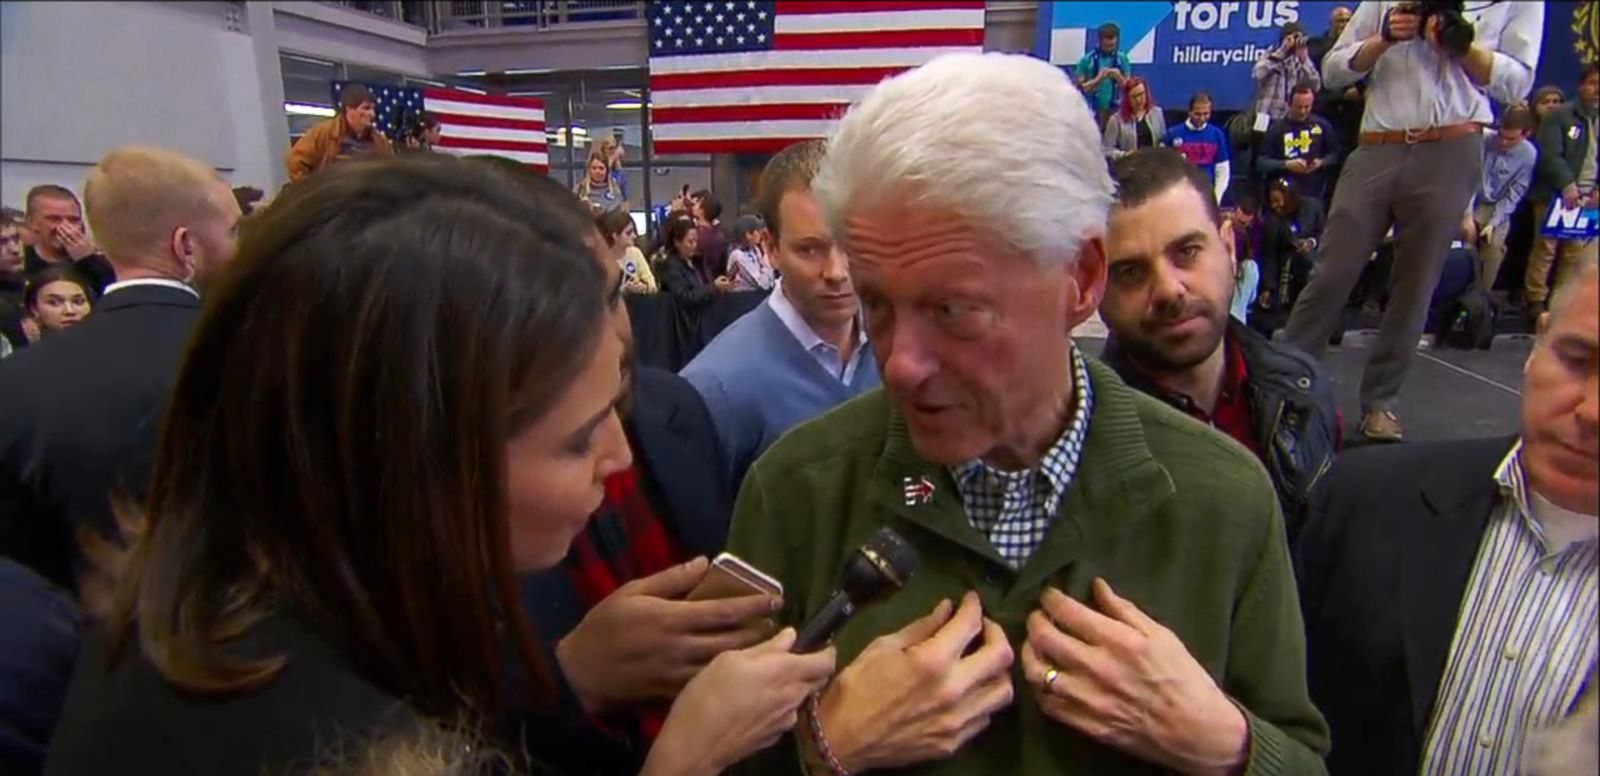 VIDEO: Clinton Talks to ABC's Cecilia Vega About Whether Sanders Campaign Is 'Playing Dirty'